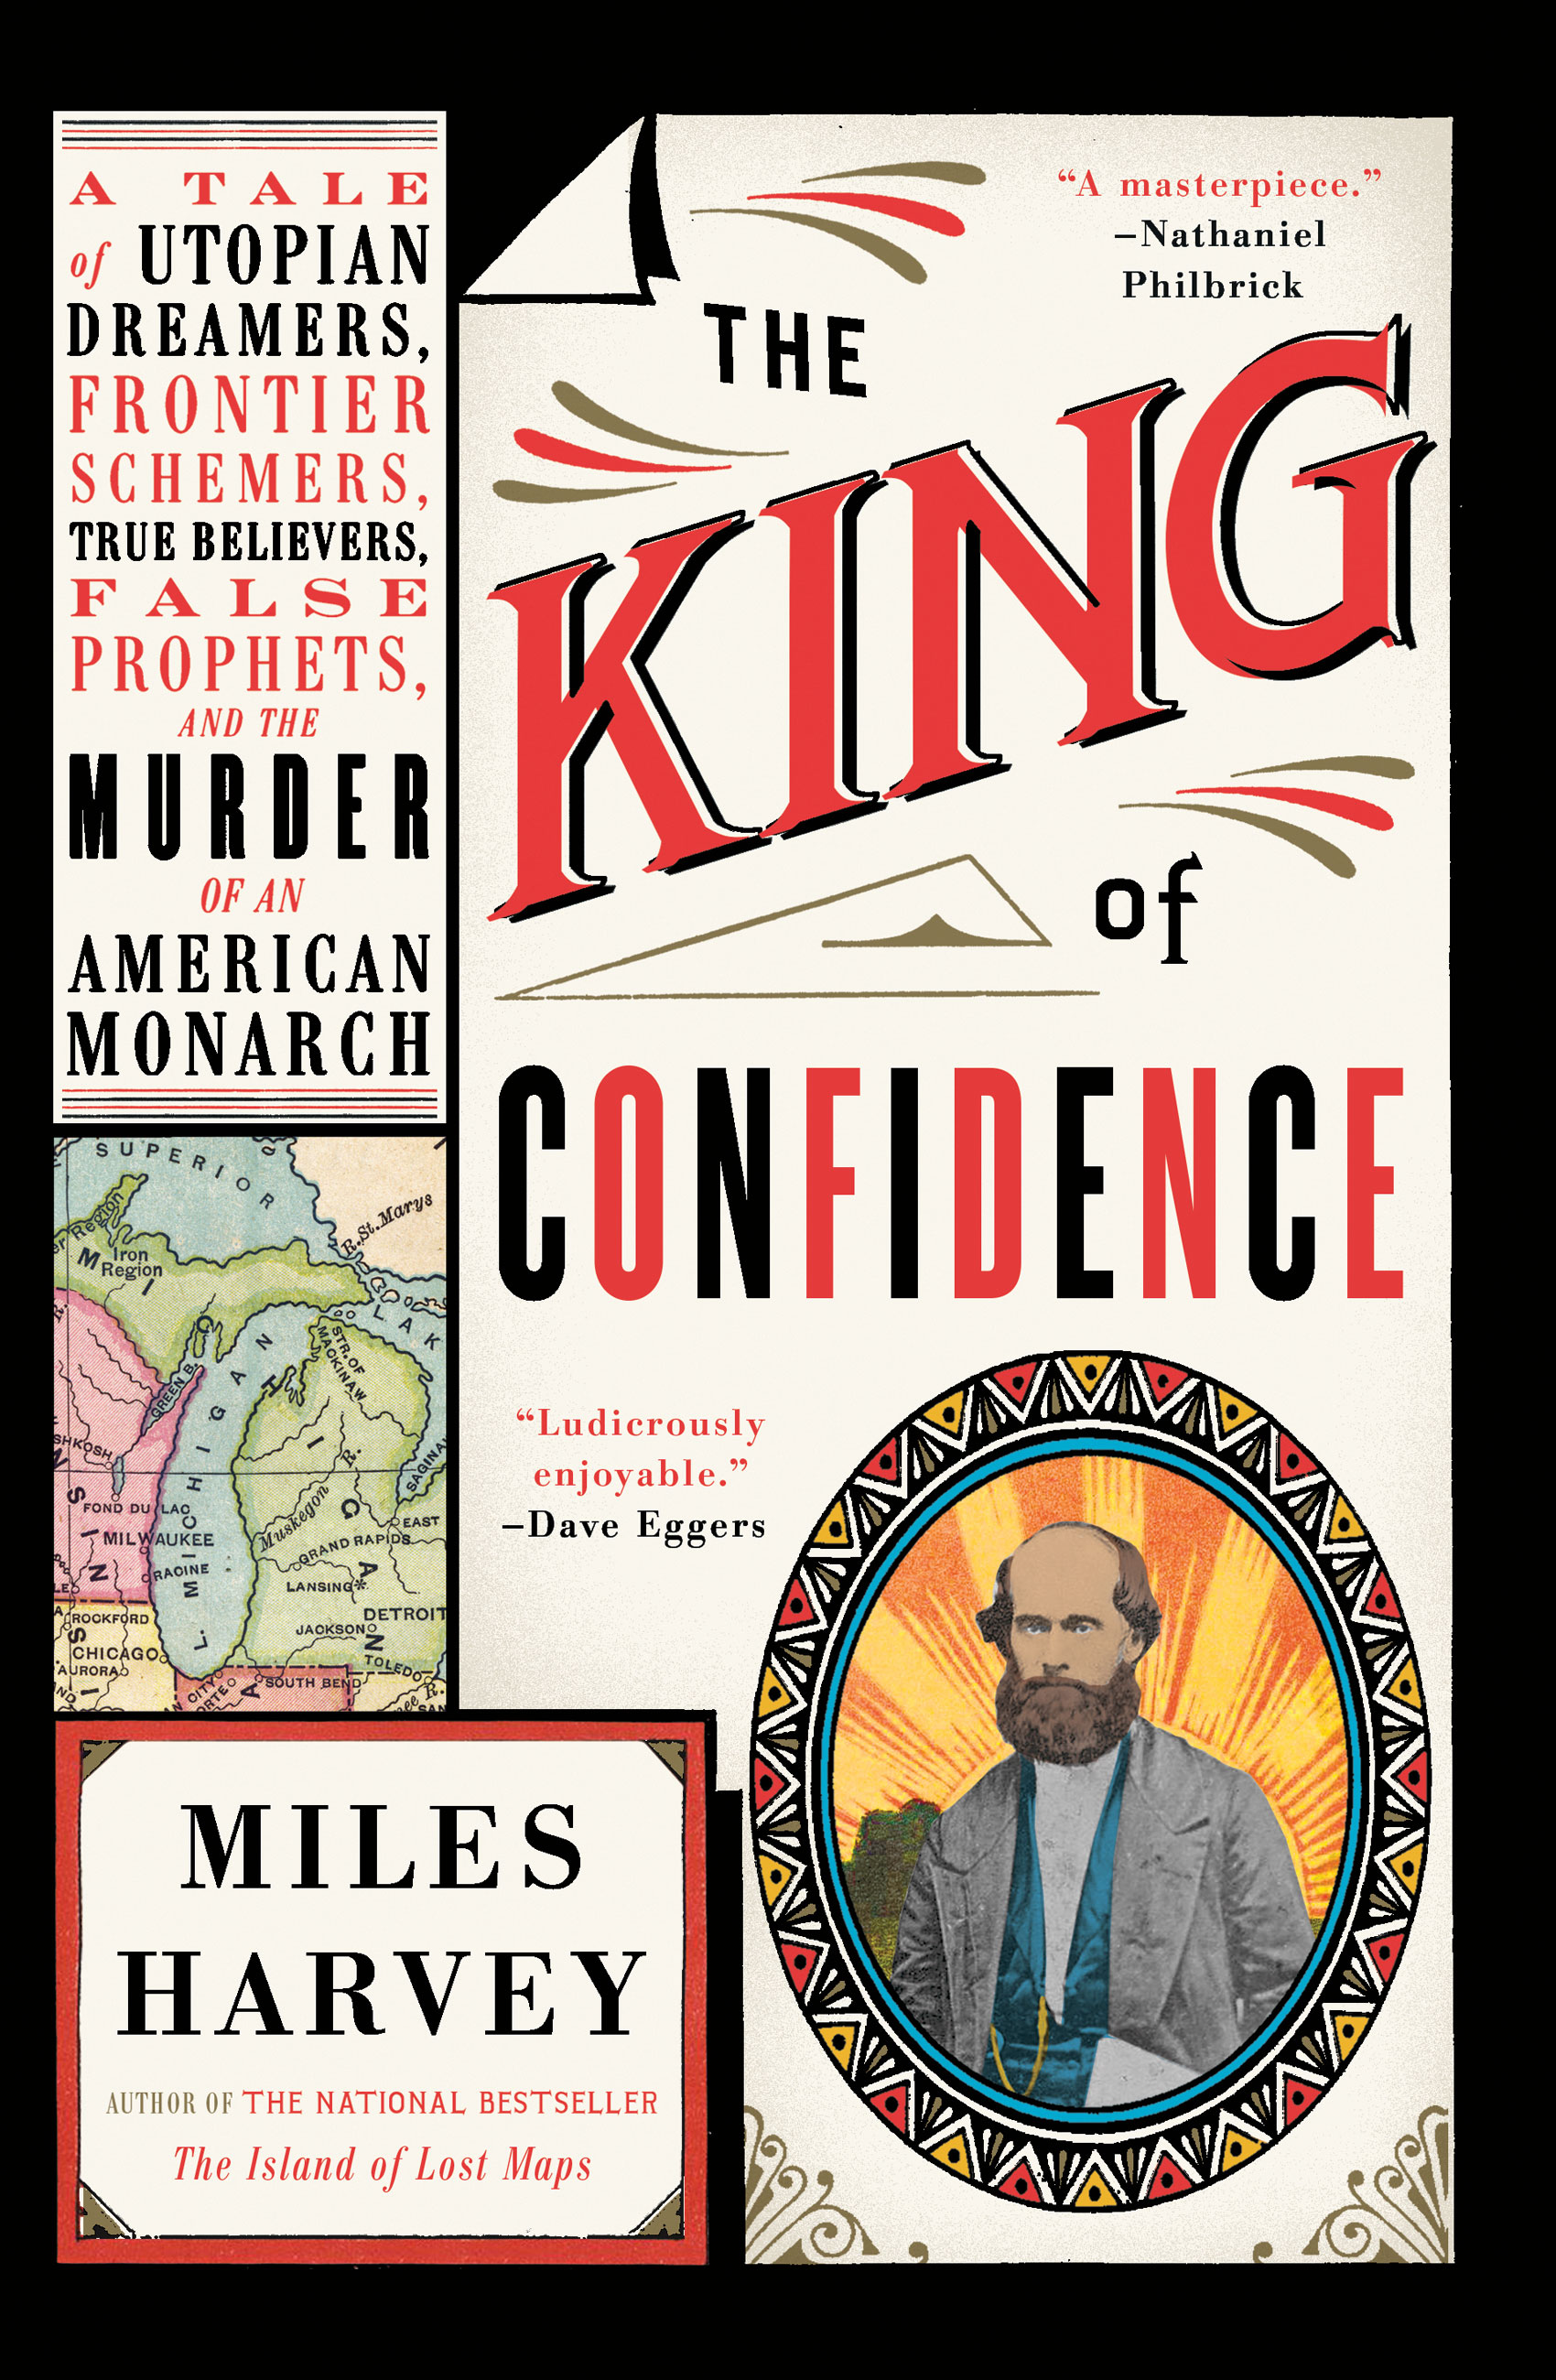 The king of confidence a tale of utopian dreamers, frontier schemers, true believers, false prophets, and the murder of an American monarch